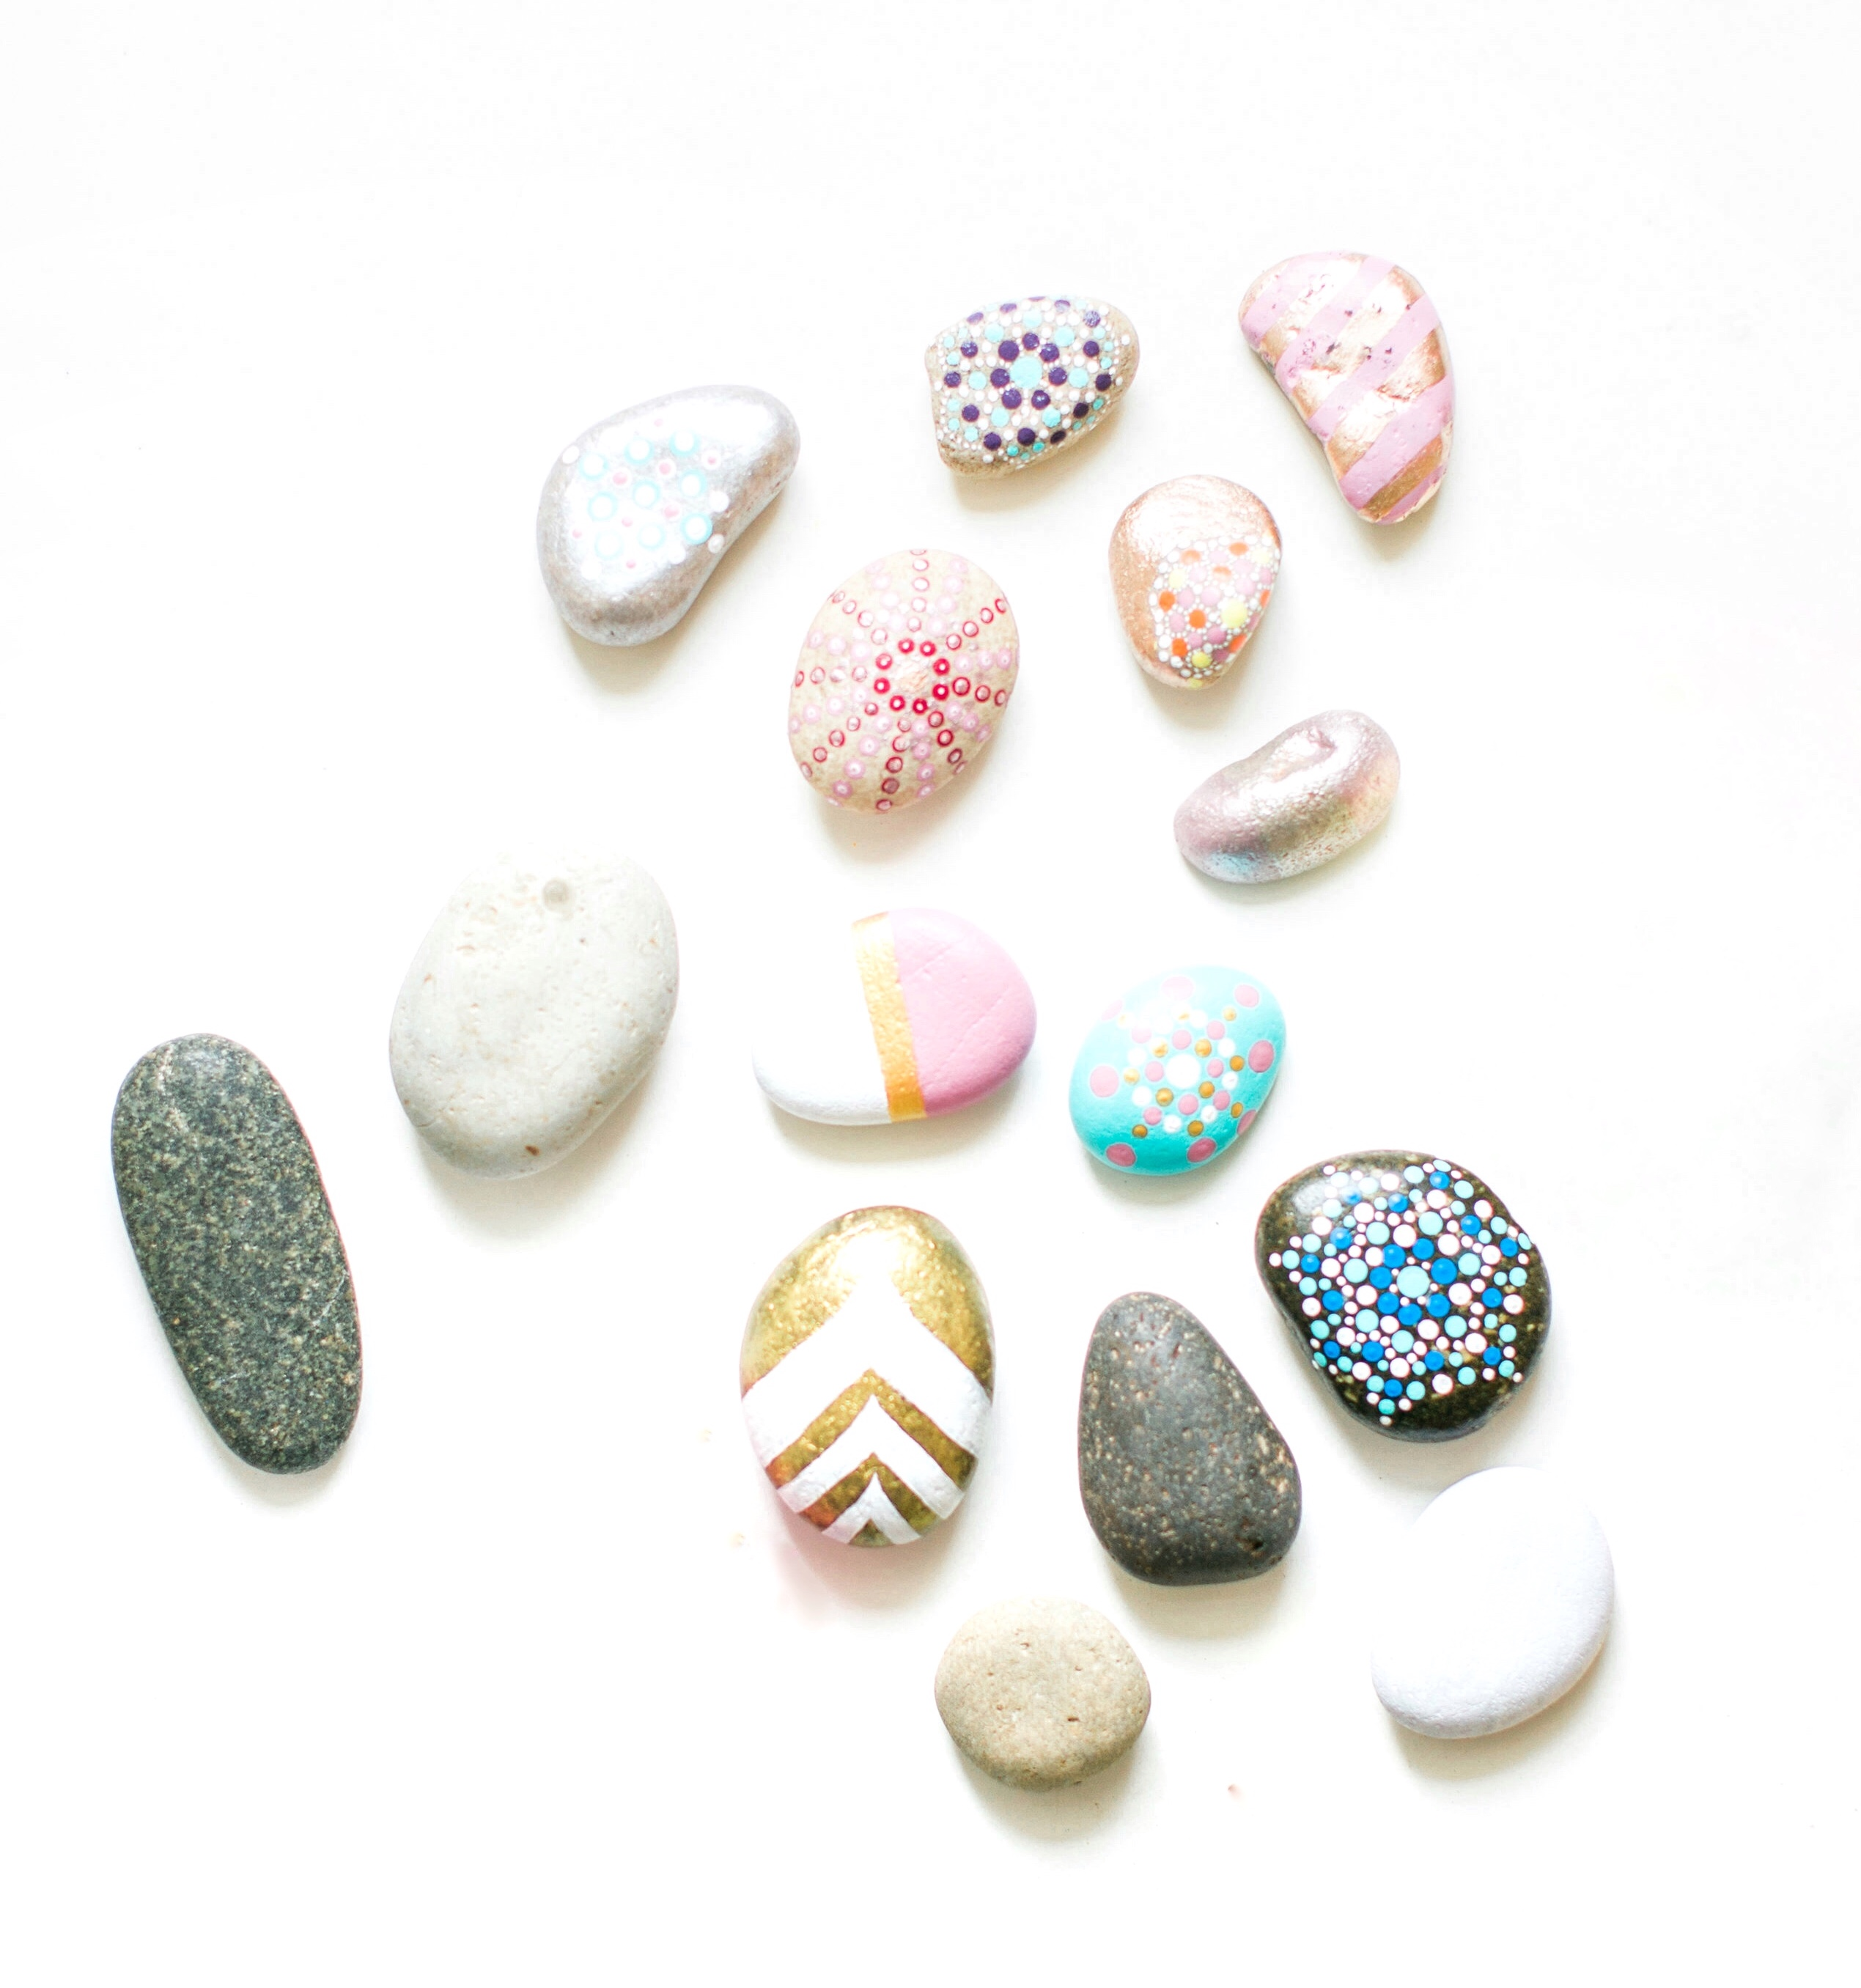 Ready for an adorable and easy Arts & Crafts project the whole family will love? There are so many fun uses for these DIY painted rocks! Here's how to make them. Click through for the details. #paintedrocks #decoratedrocks #mandalarocks #diy #diyrocks #diypaintedrocks | glitterinc.com | @glitterinc